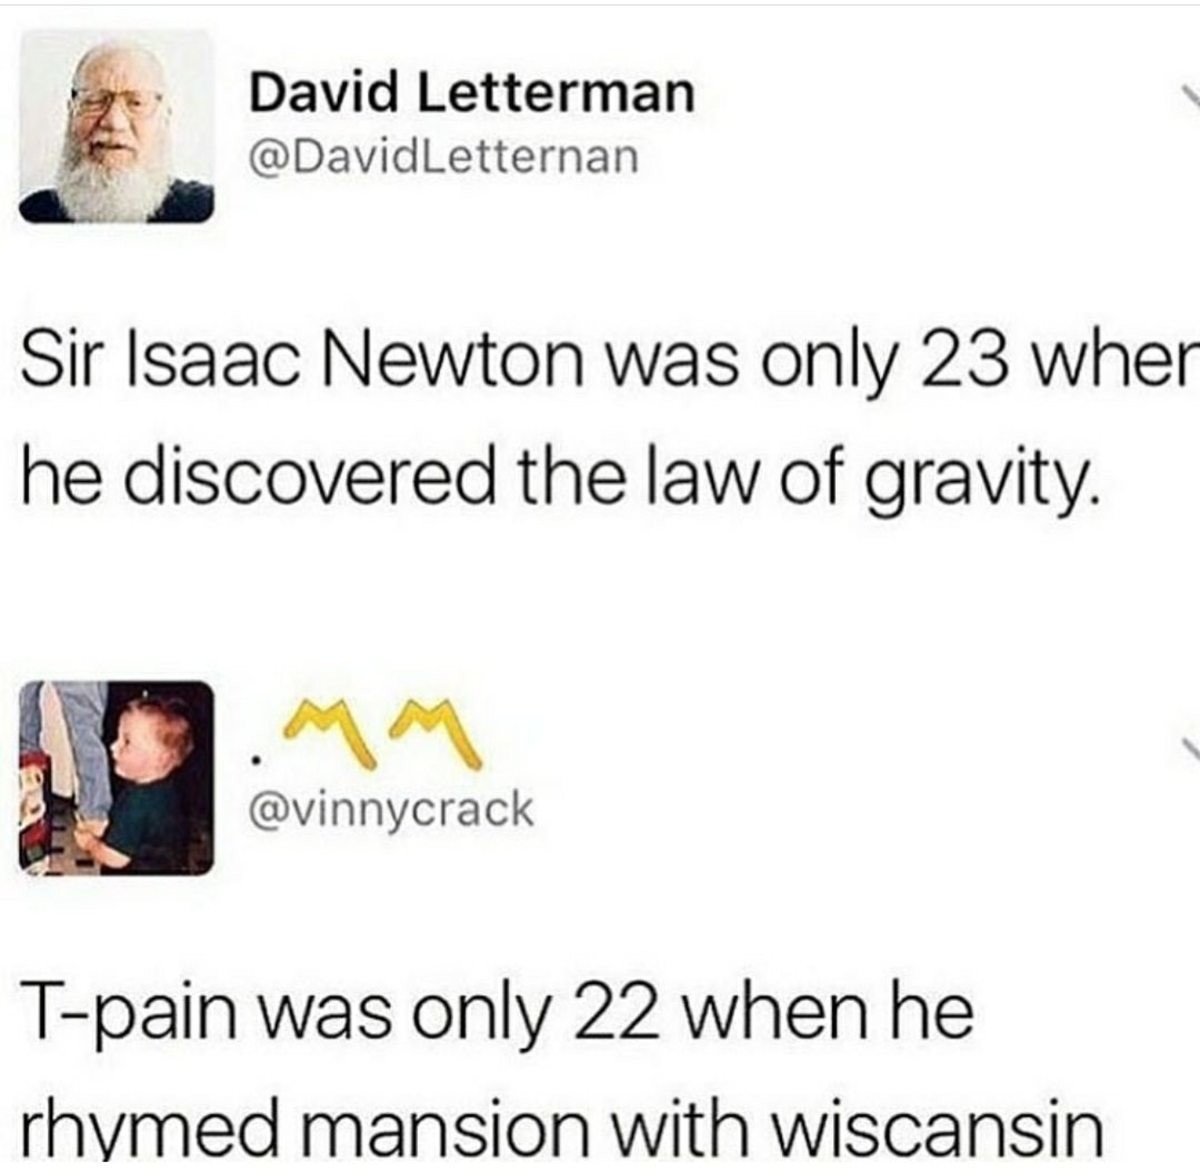 True geniuses of our time. . j,! ''. David Letterman x d / of gravity. i/ l/ tri? only fulfil / (Iae. here lies newton, he studied fast and died a virgin